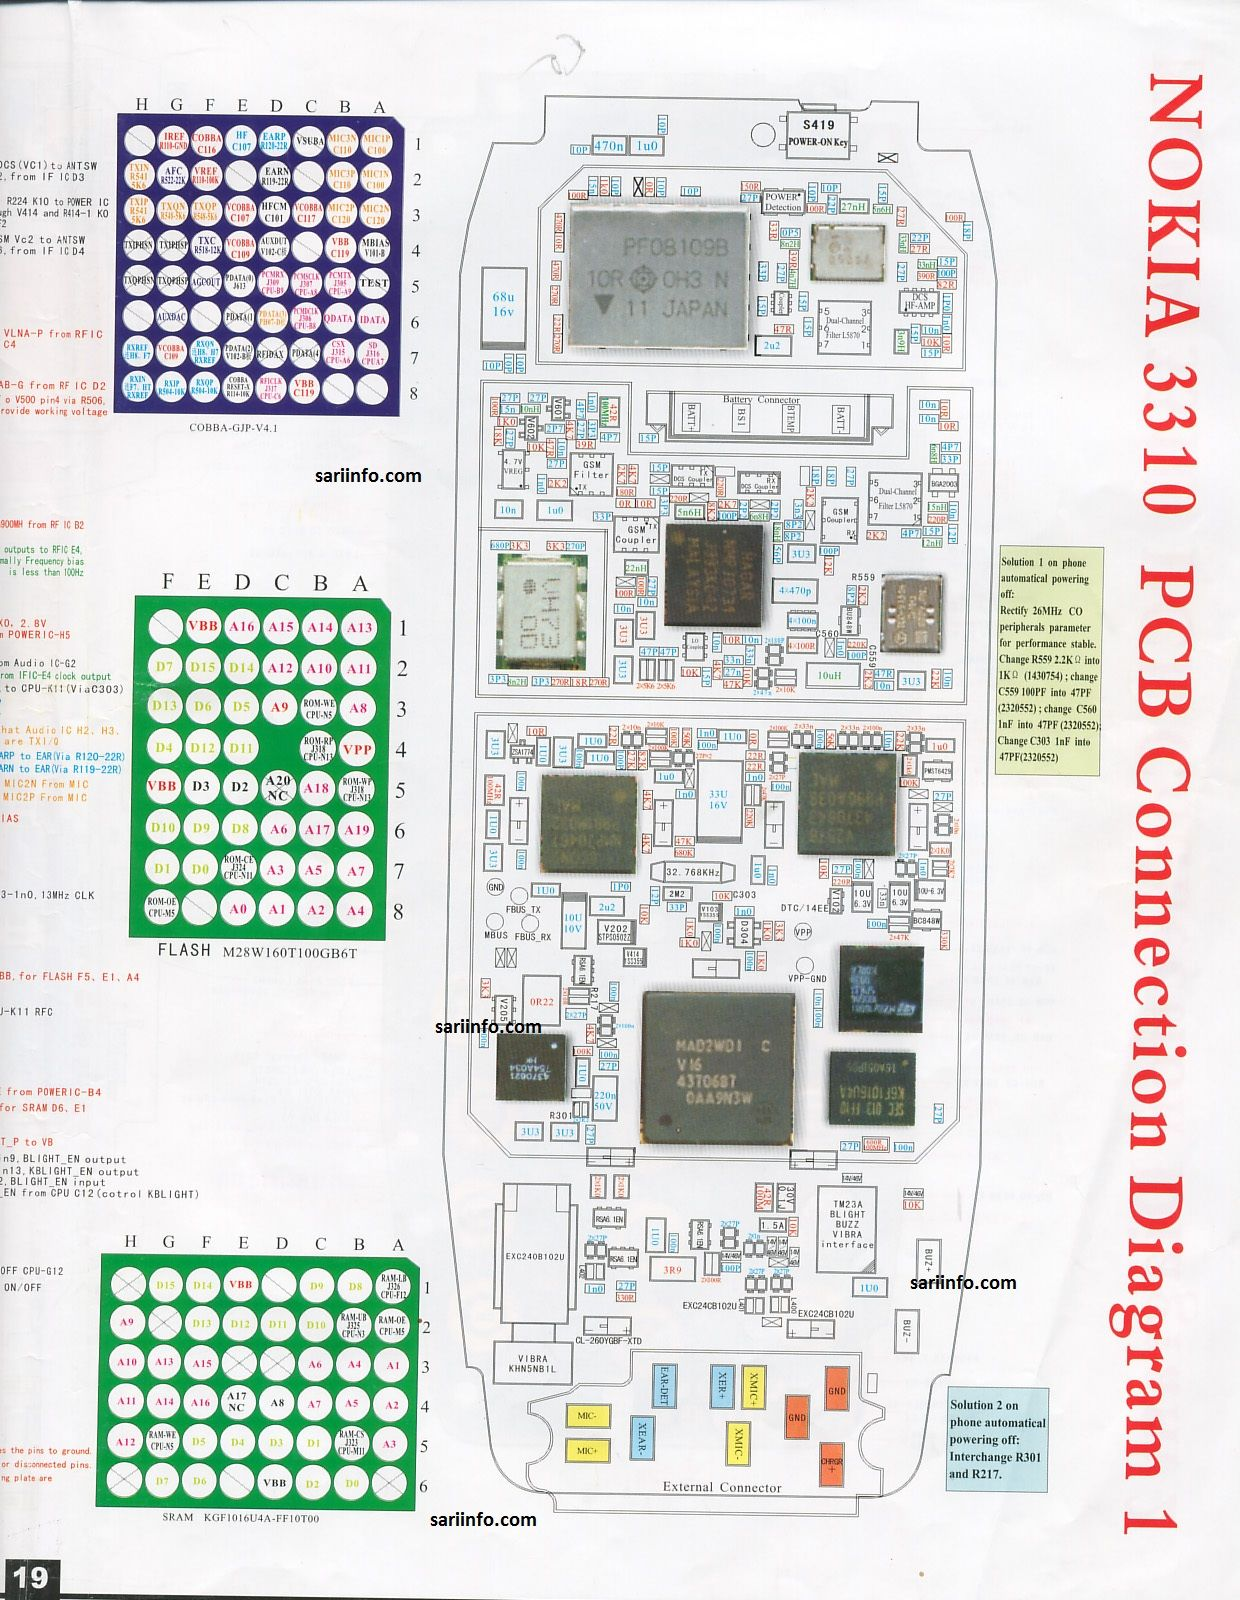 nokia 3310 pcb diagram solutions mobiles tablets pinterest rh pinterest com Xbox One Diagram Nokia Maps